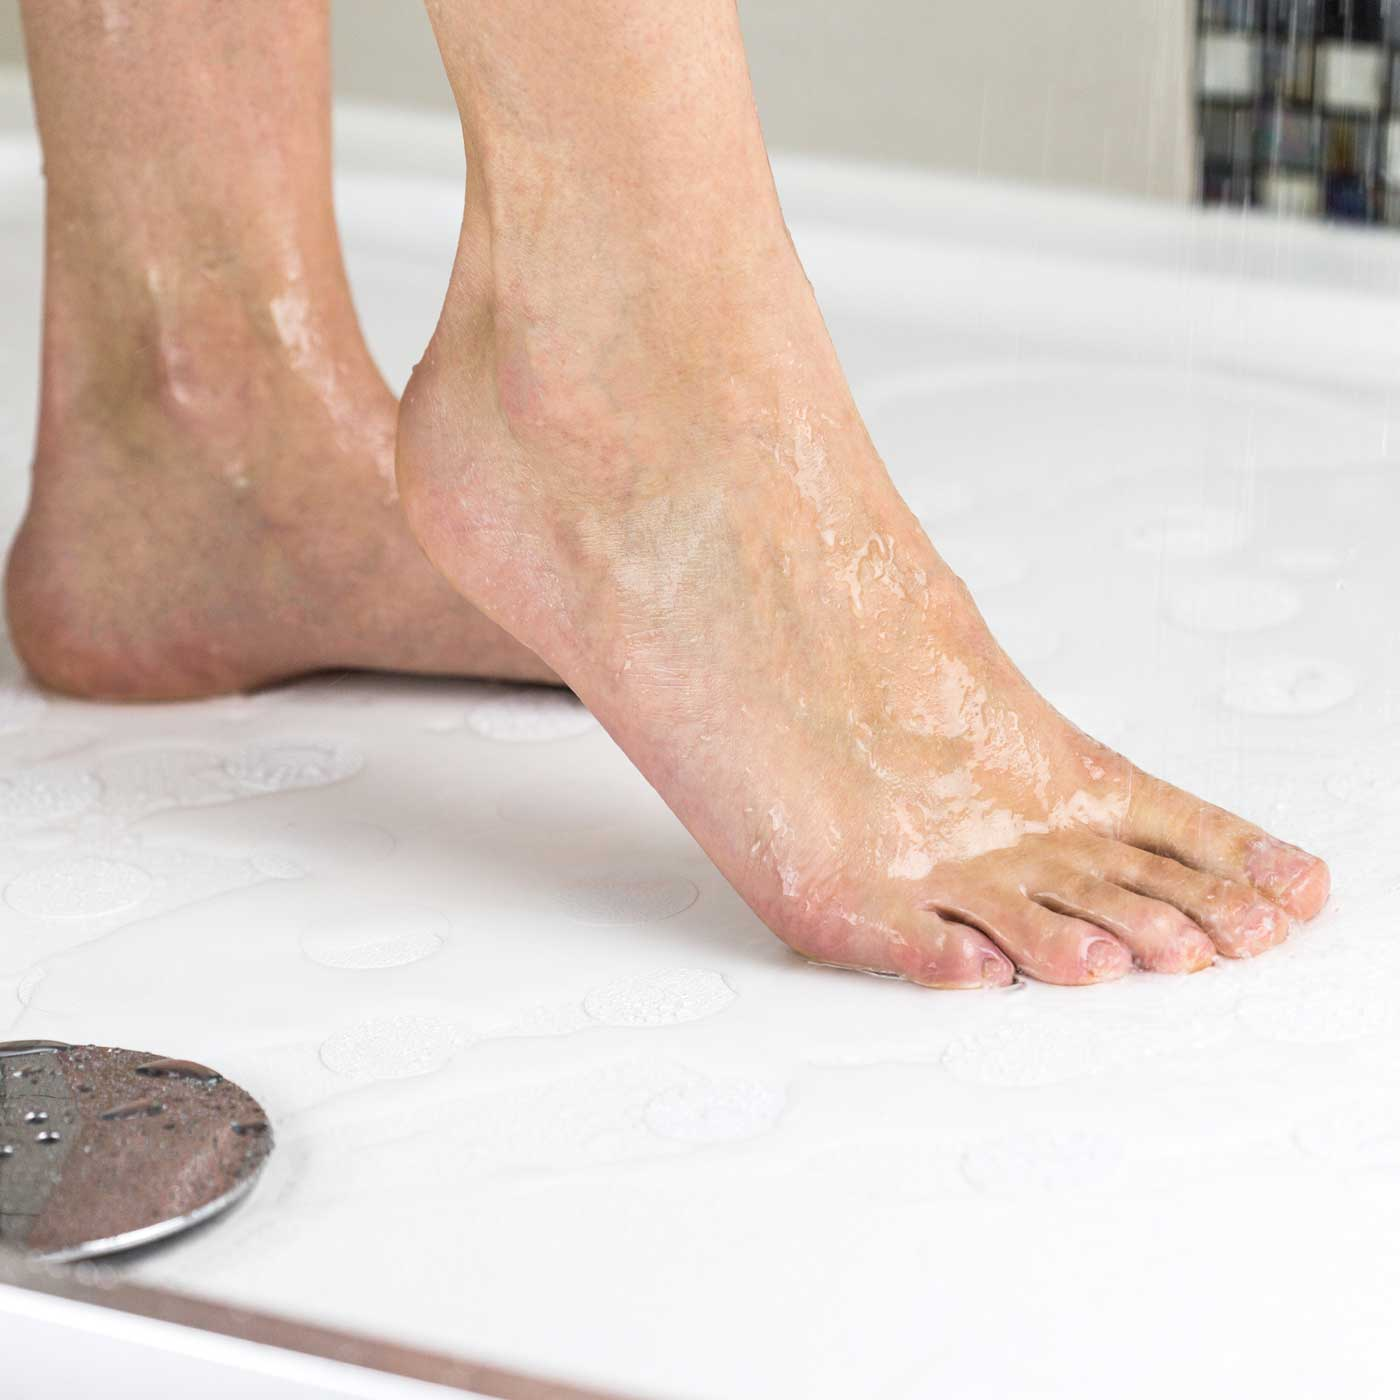 Non slip bath stickers help prevent slips